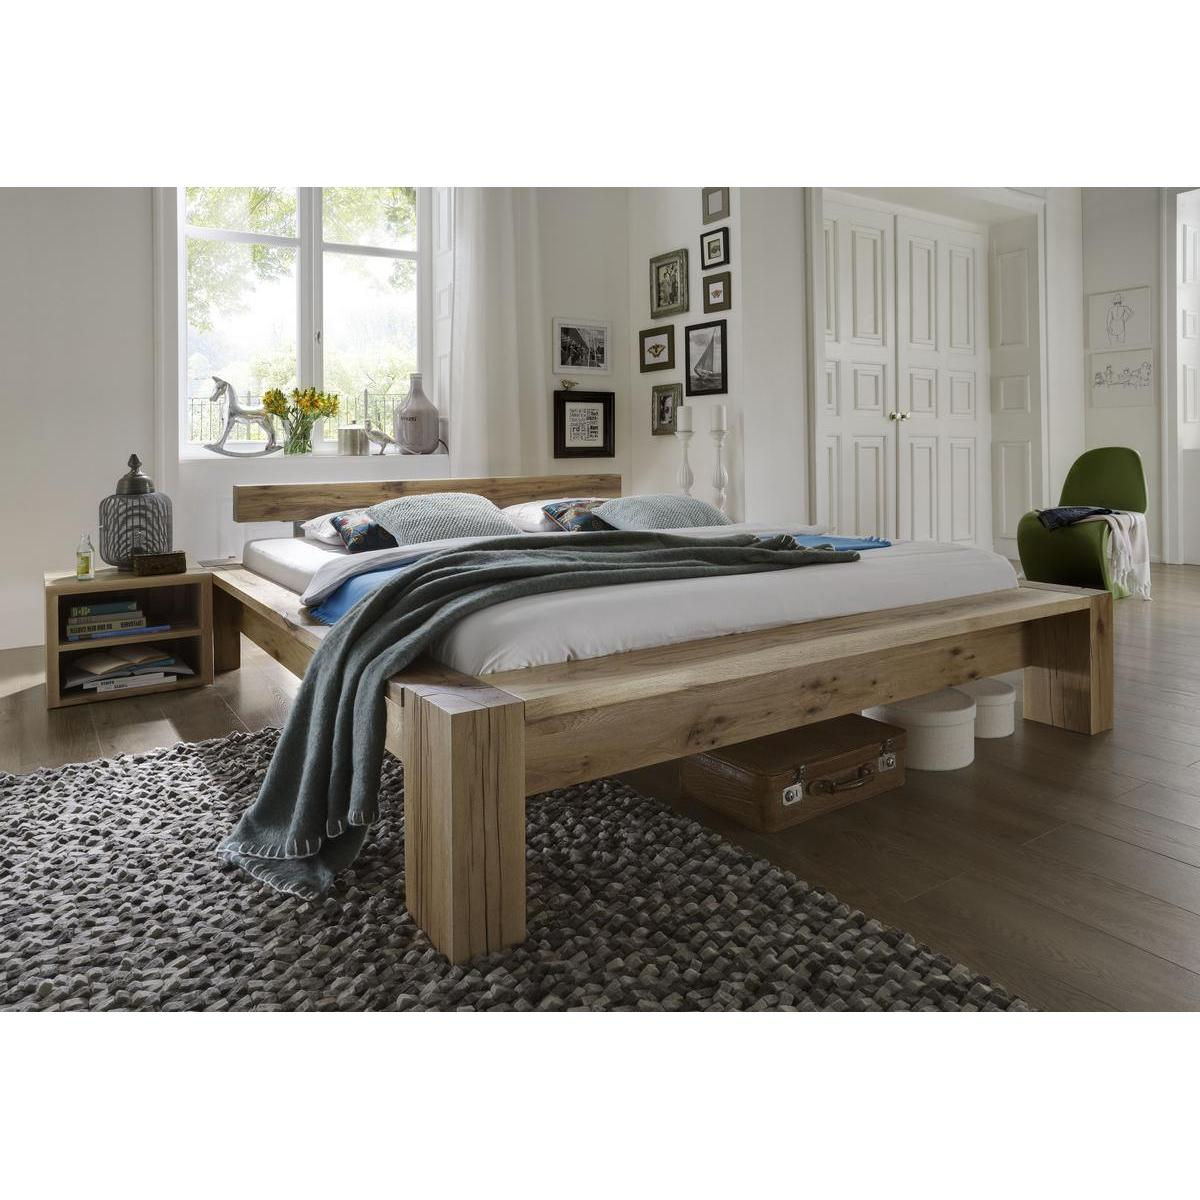 echtholz balkenbett 140x200 heavy sleep capri wildeiche massiv natur ge lt 2414 28 2110 3. Black Bedroom Furniture Sets. Home Design Ideas